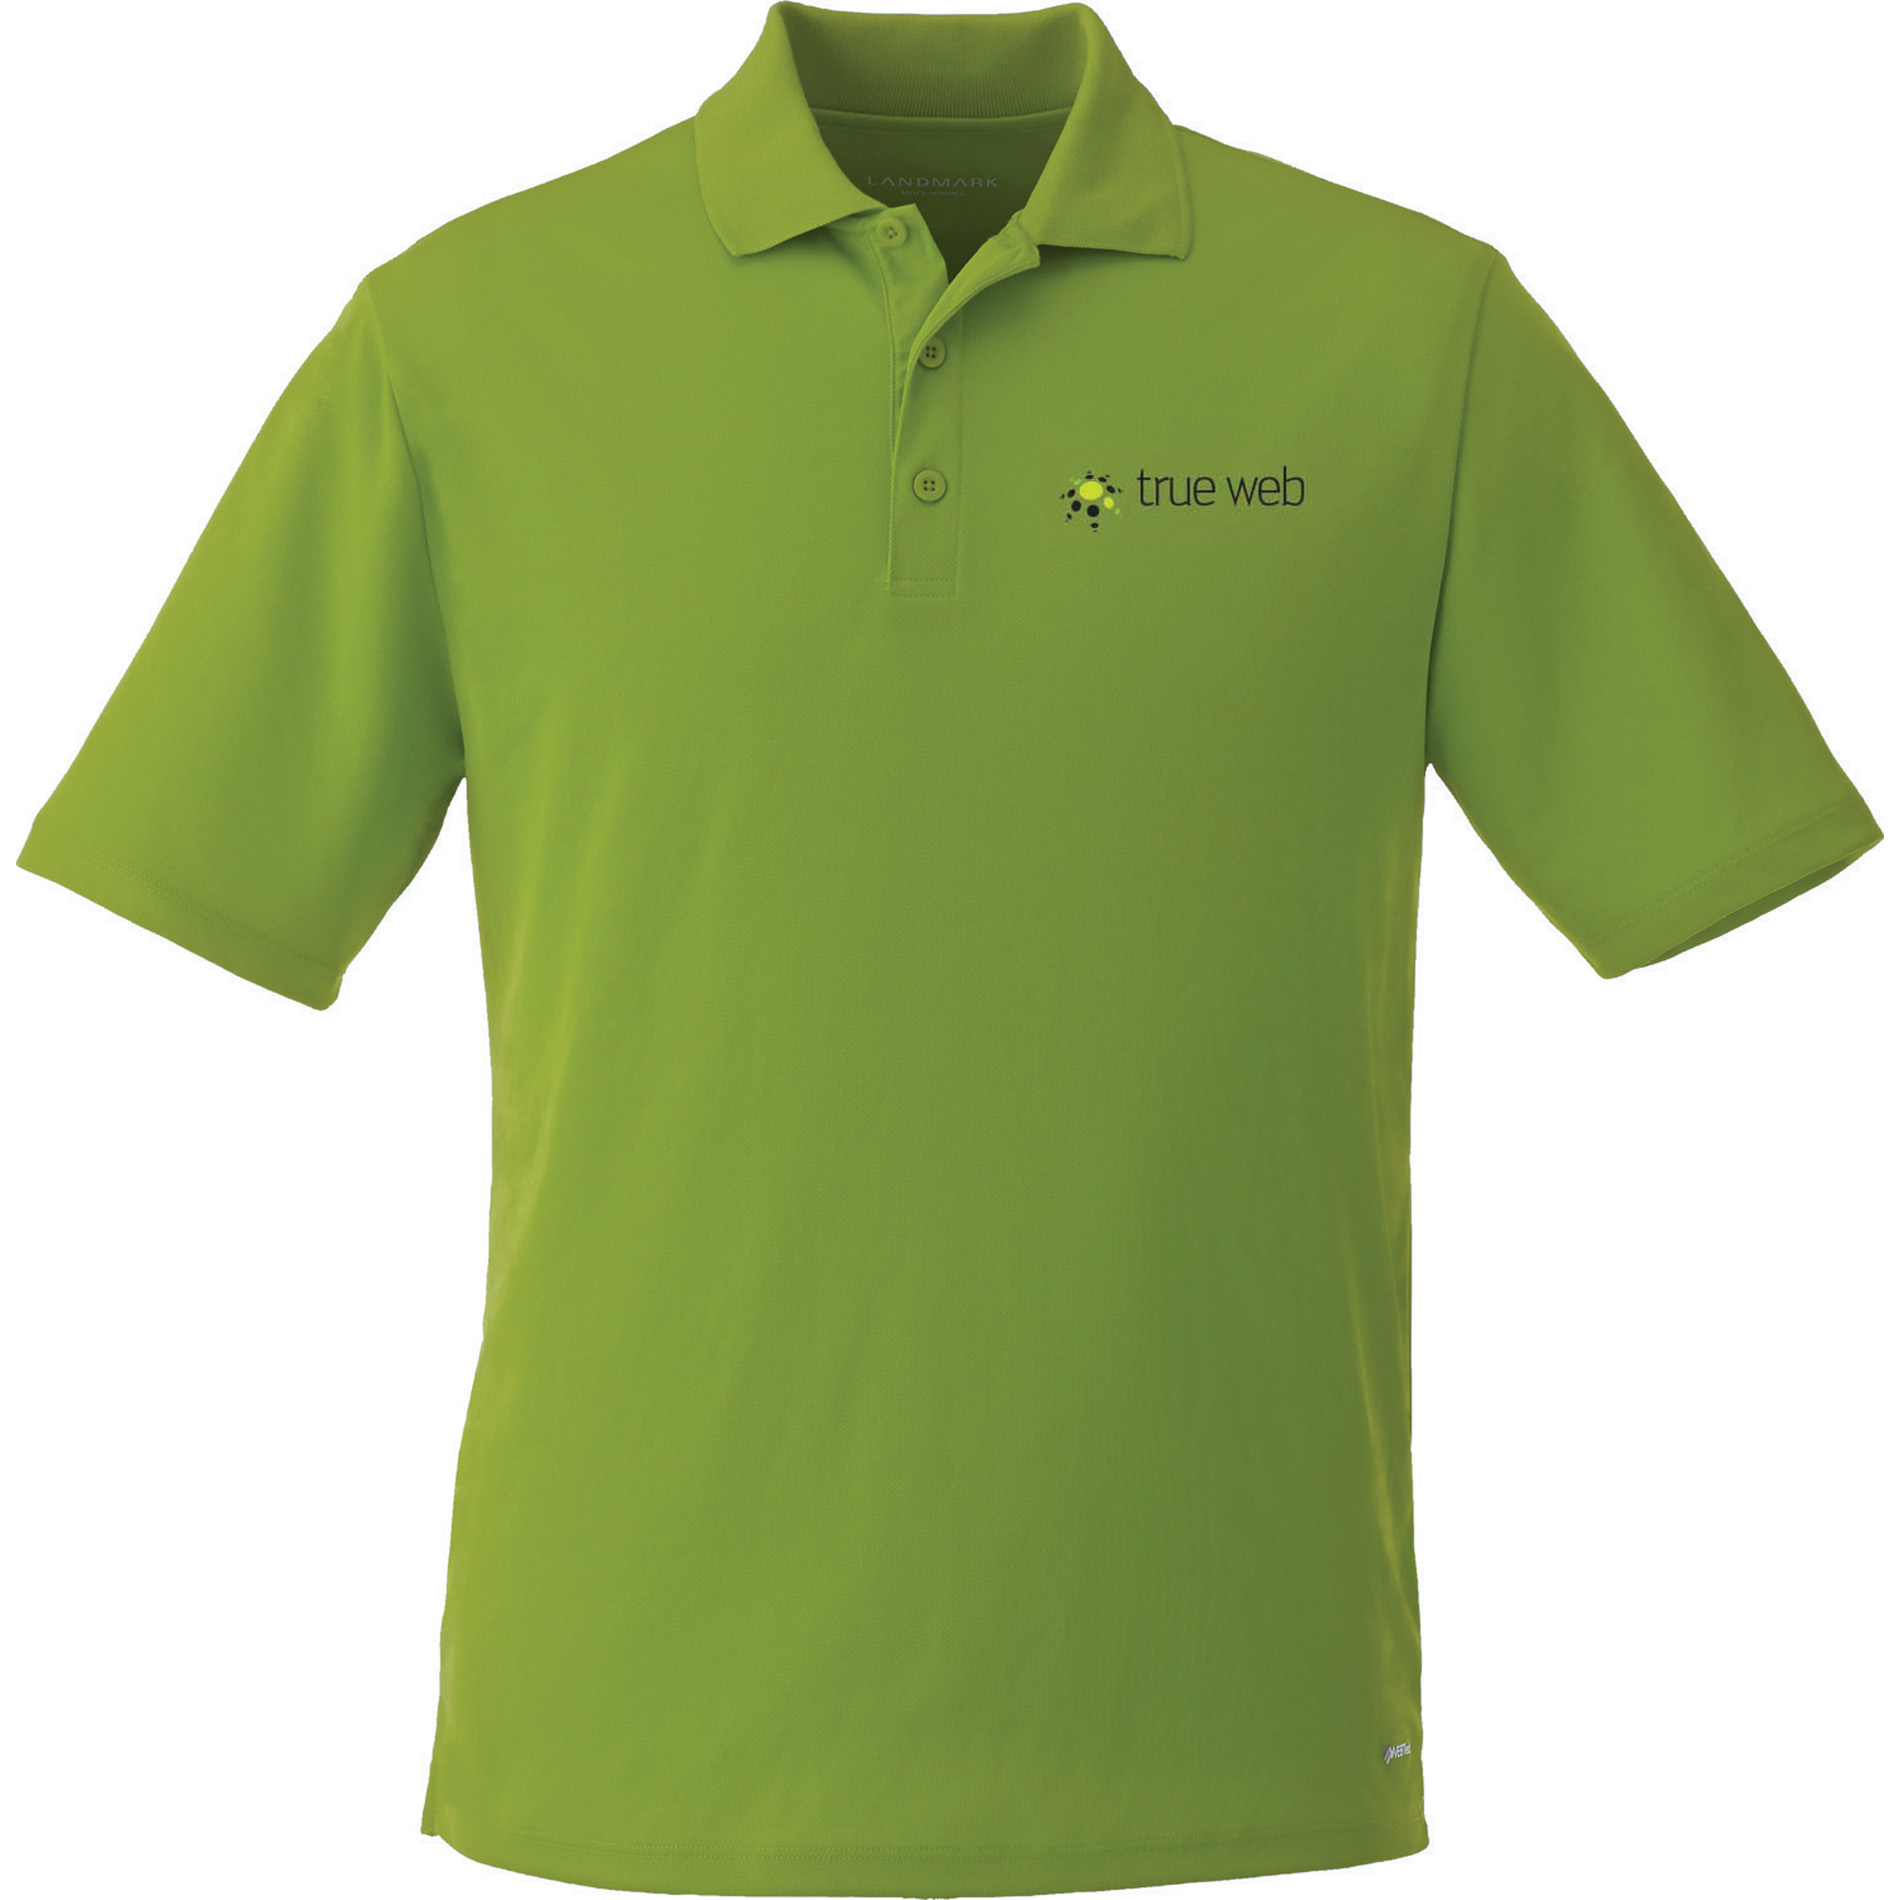 Promotional Products | Polos & Golf Shirts